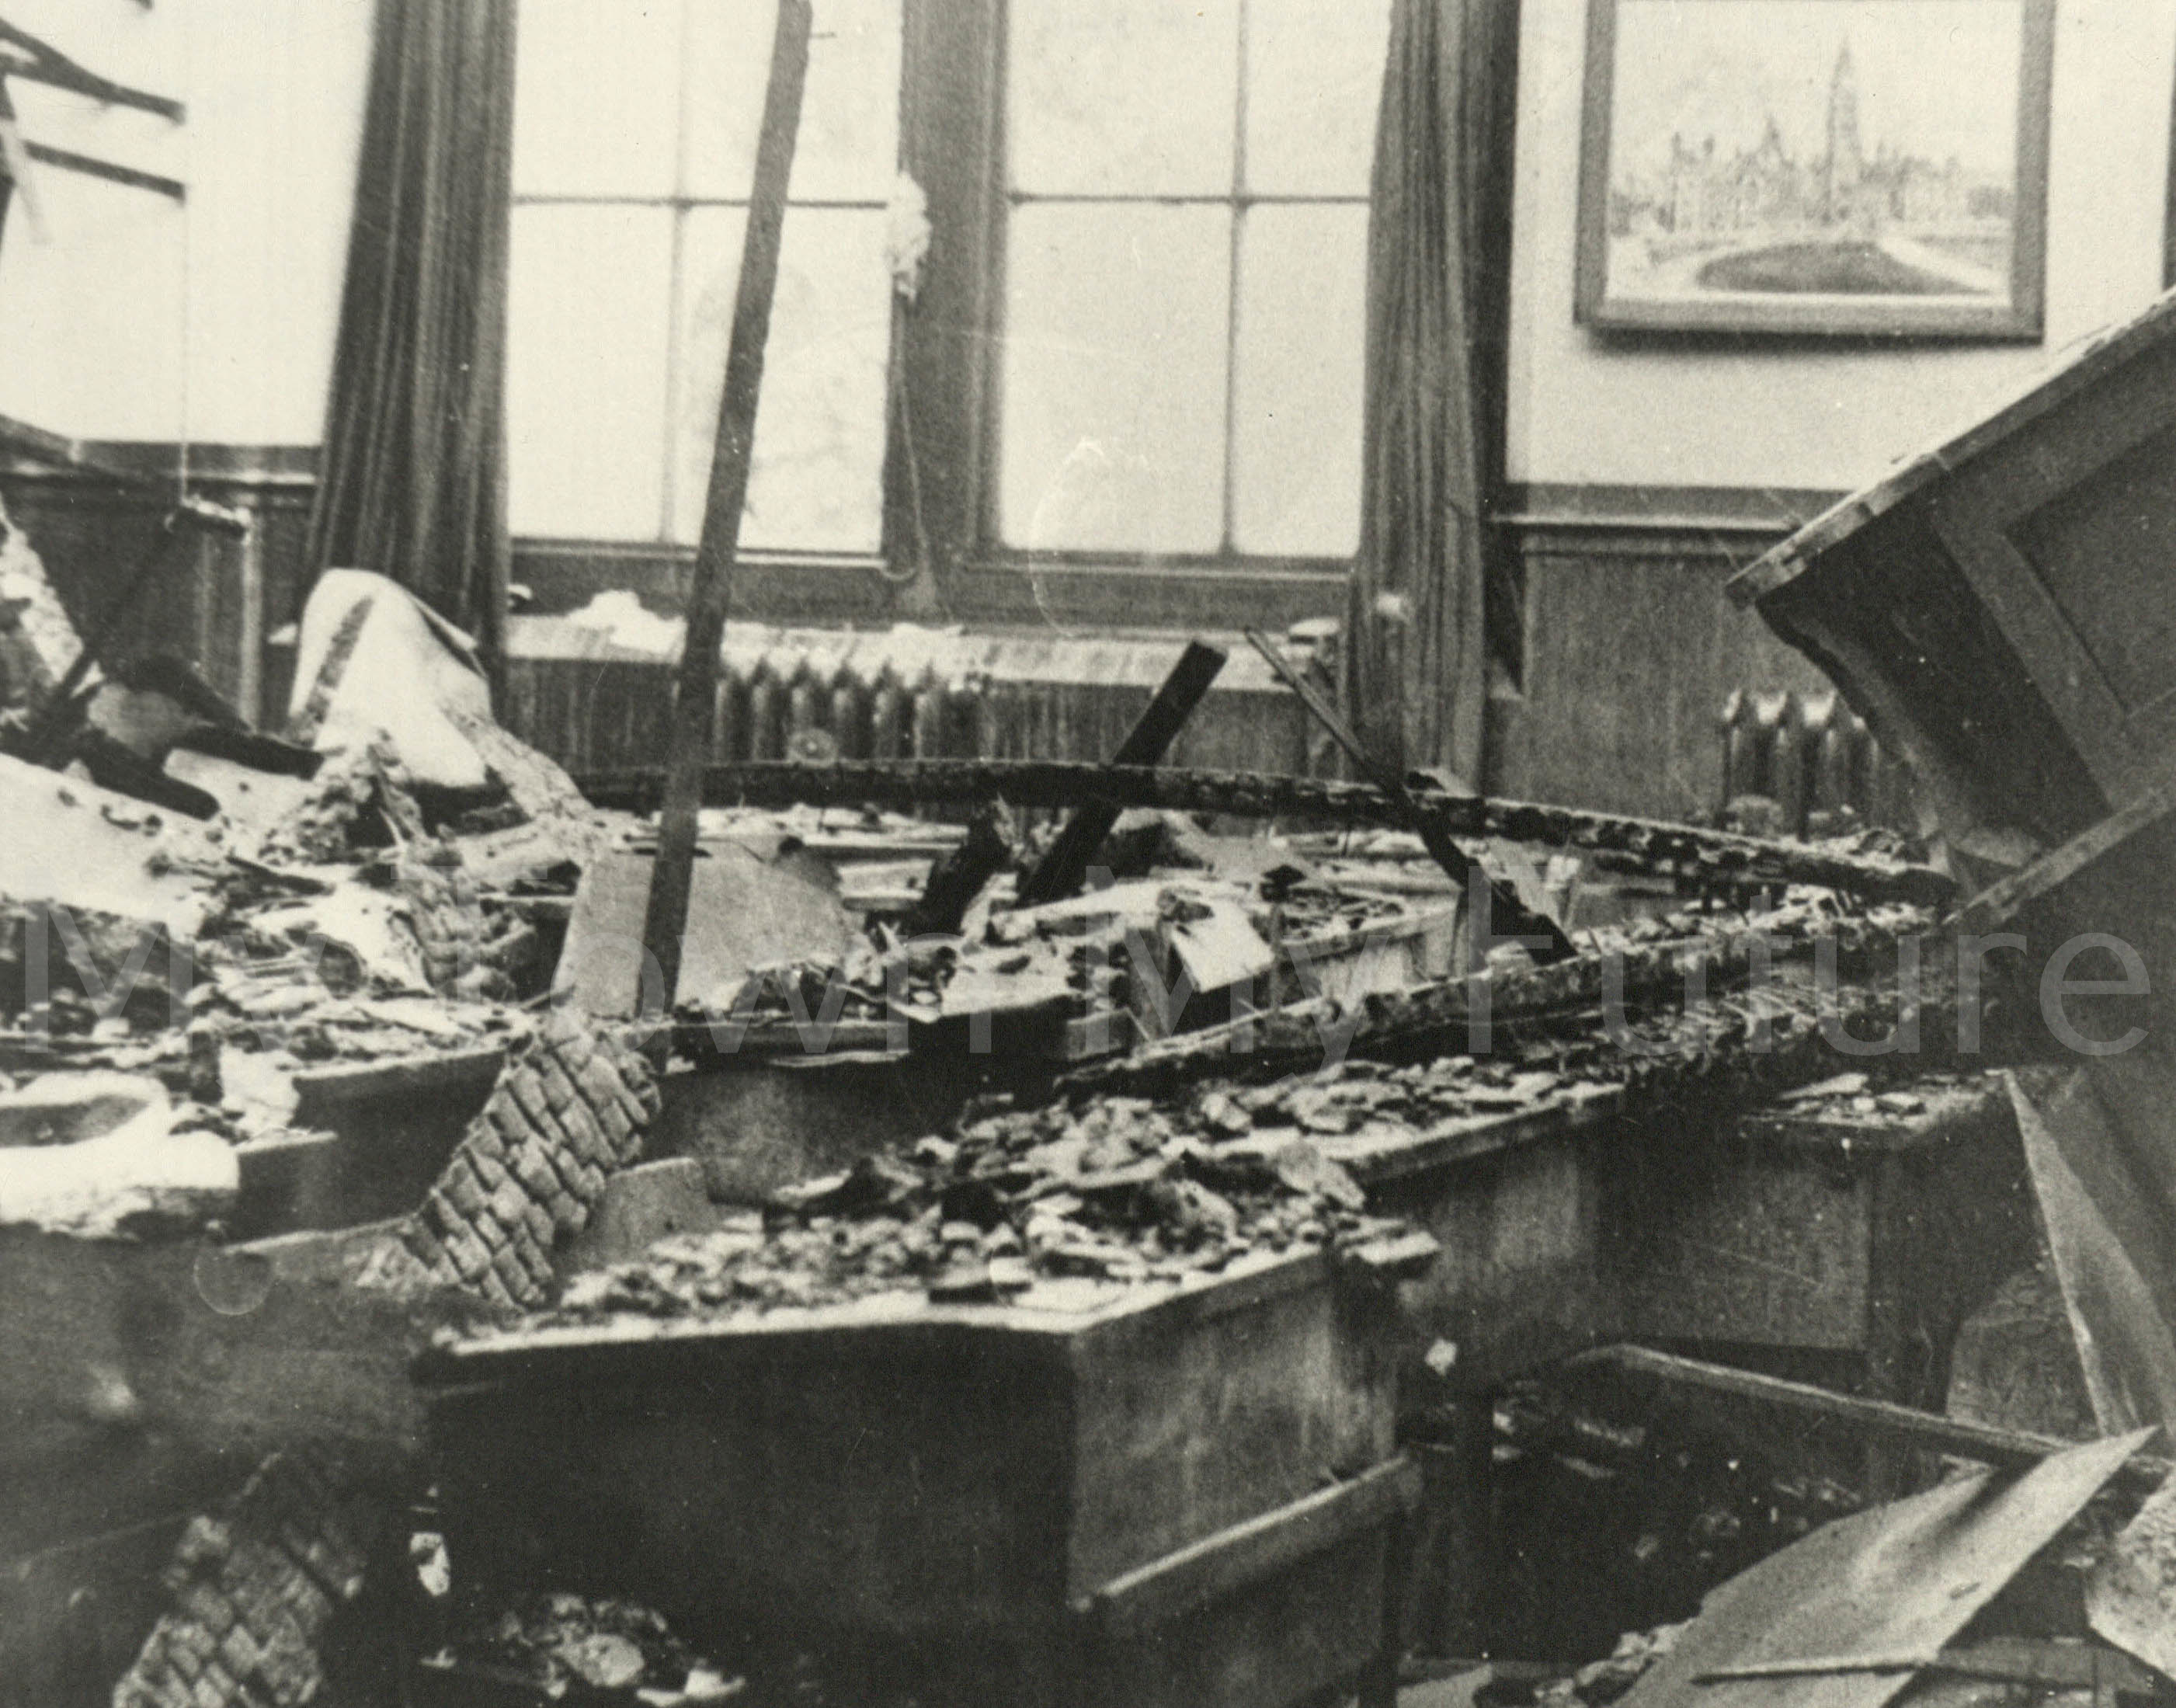 Bomb Damage - Middlesbrough Girls School, After raid on 7th-8th July 1942